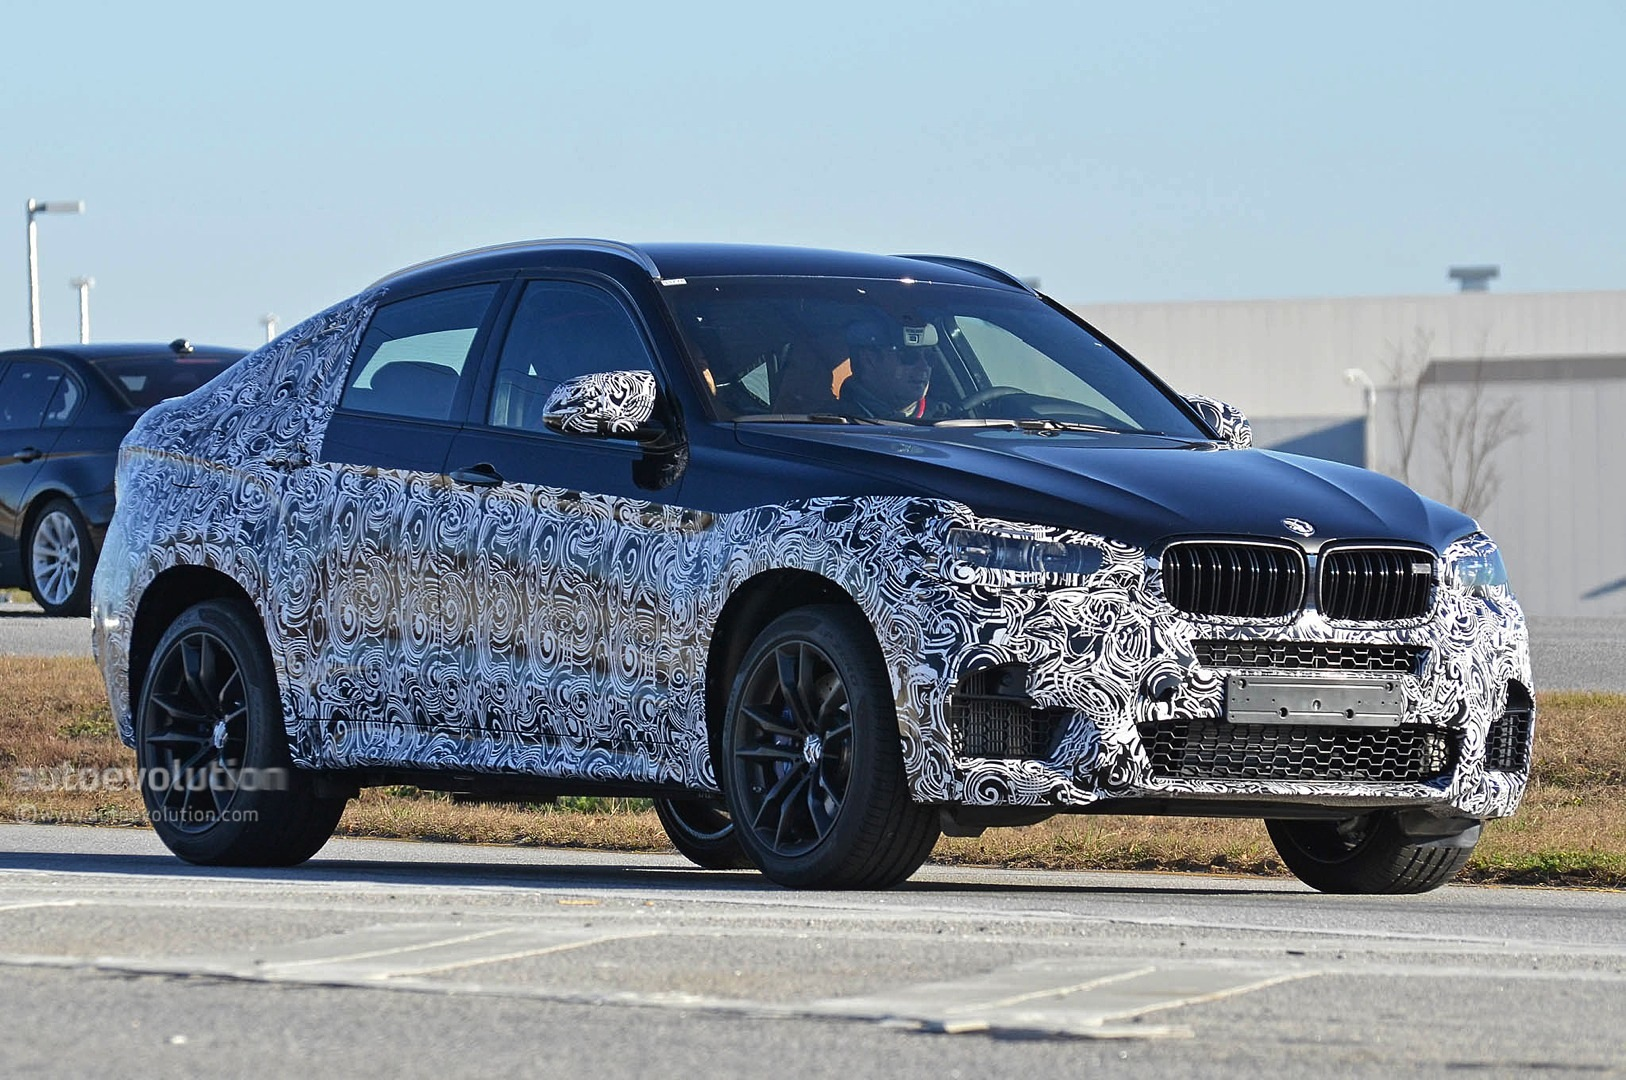 spyshots 2016 bmw x6 m autoevolution. Black Bedroom Furniture Sets. Home Design Ideas